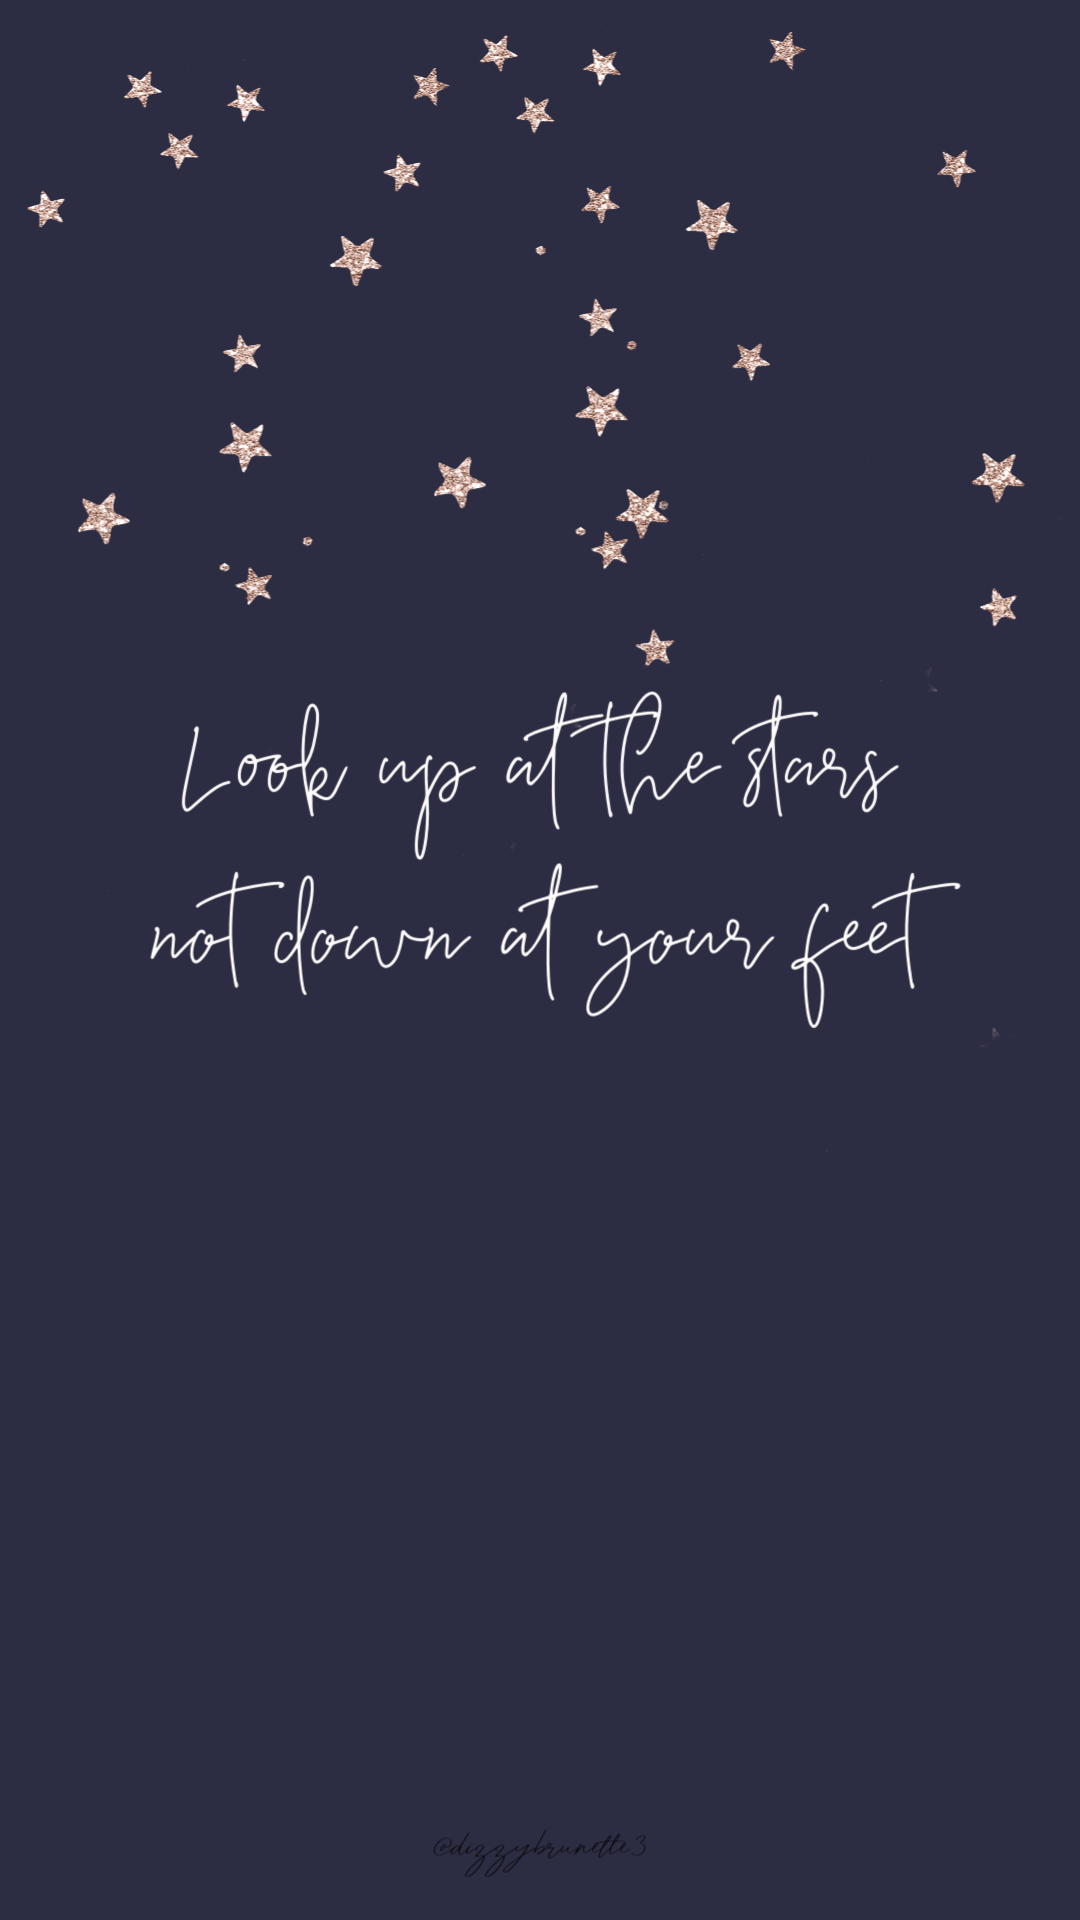 Inspirational Quotes Quotes Pin Wallpaper Quotes Wallpaper Iphone Quotes Phone Wallpaper Quotes